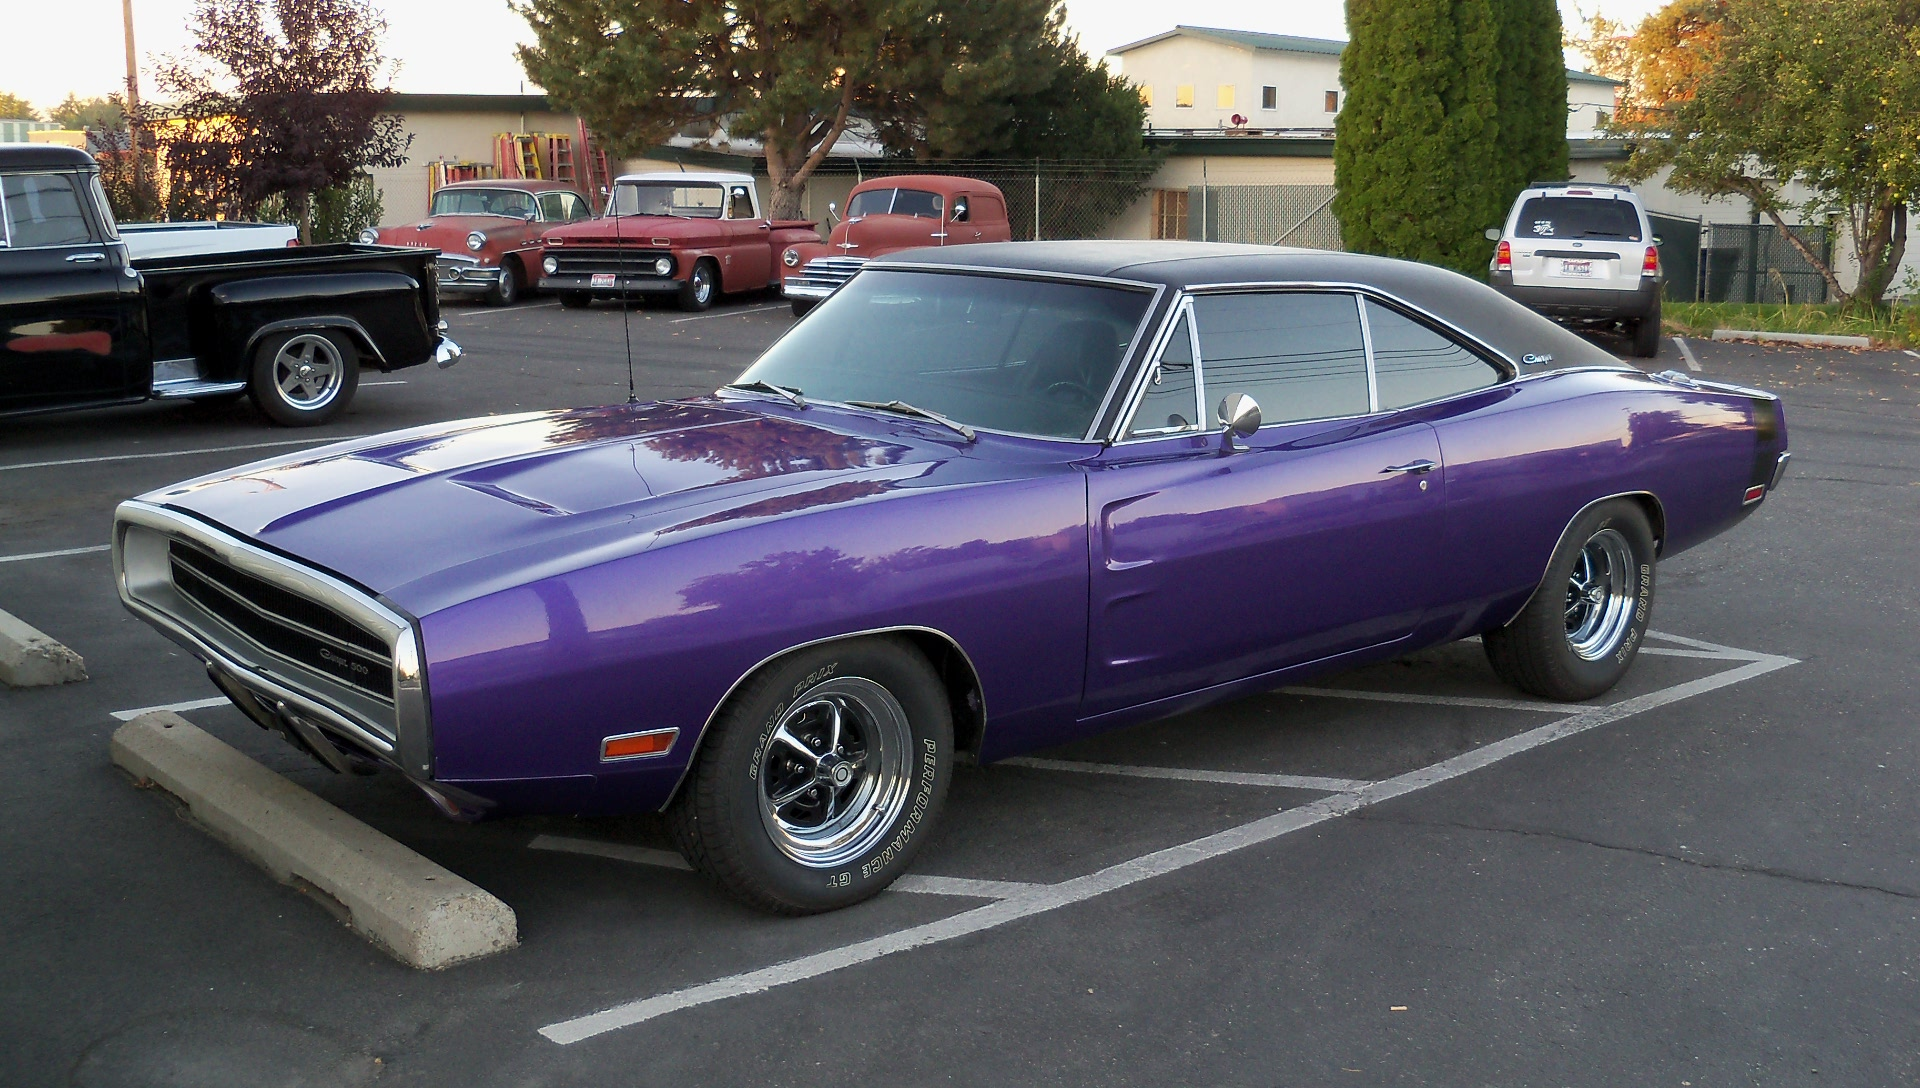 Steve brought us his '70 Dodge Charger for Kenny and Crew to do some